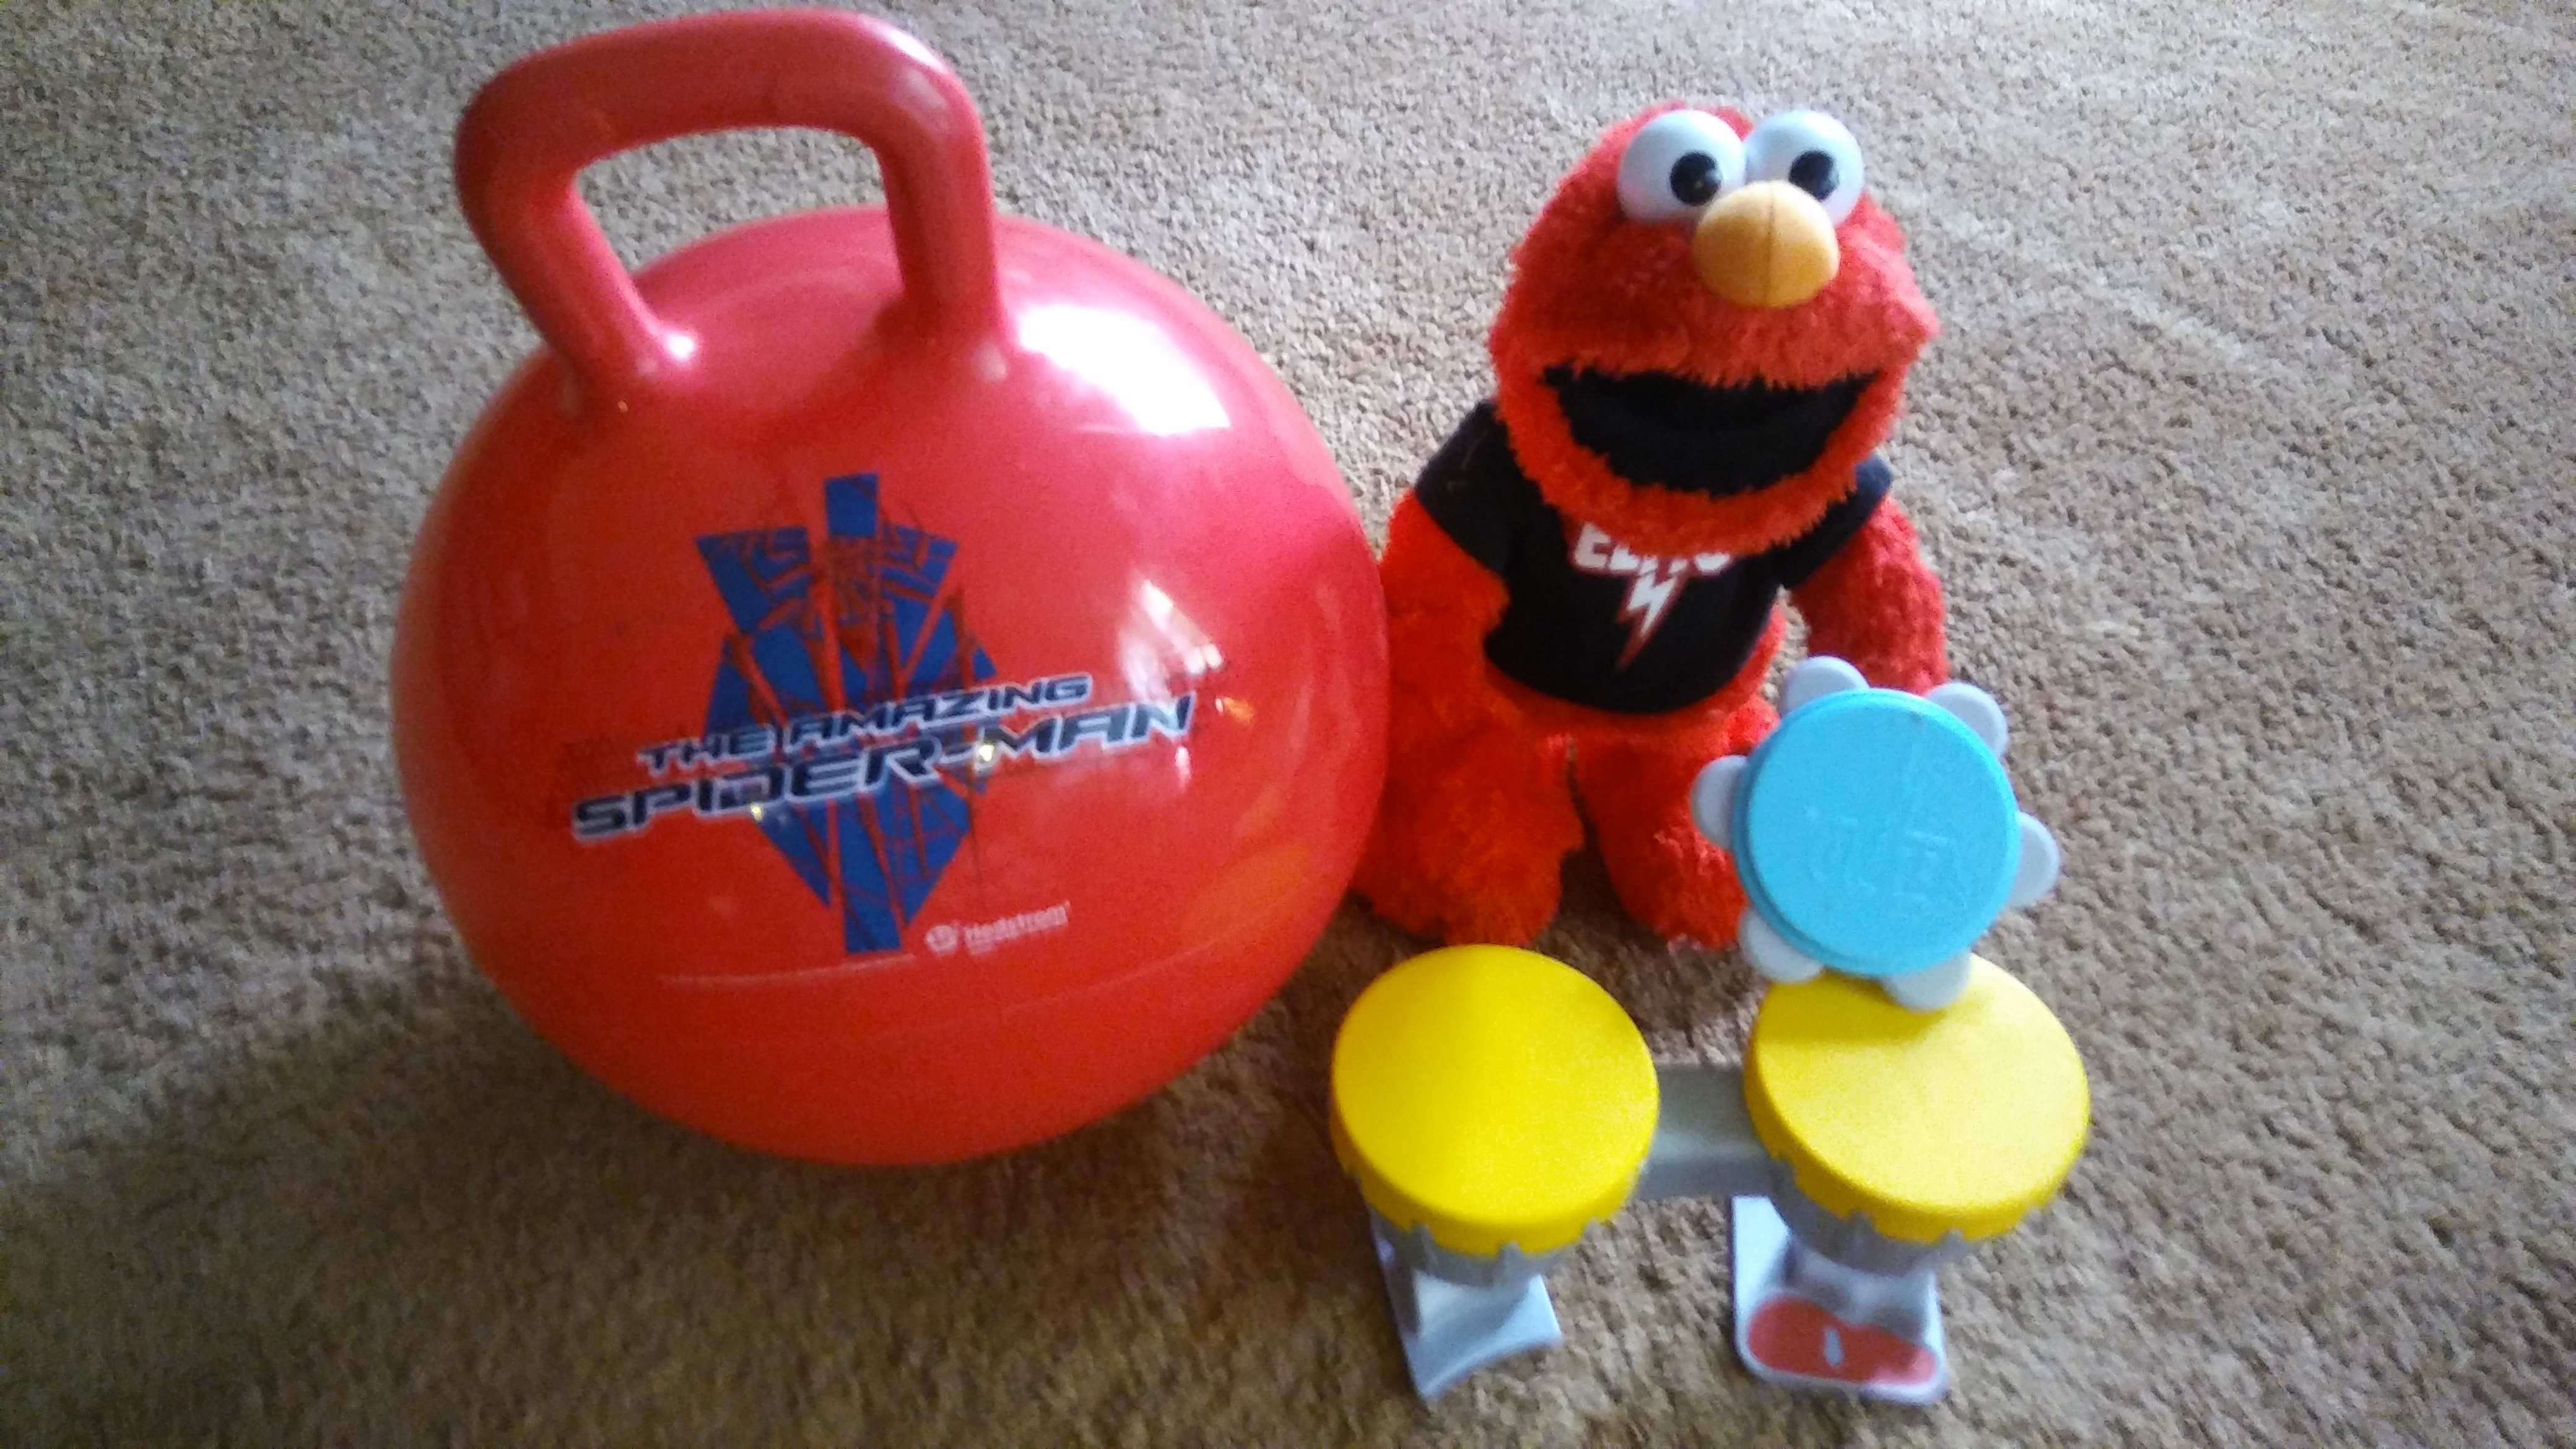 Rock and roll elmo and spider man bounce ball lot $7 . Elmo works great. Plays drums and sings